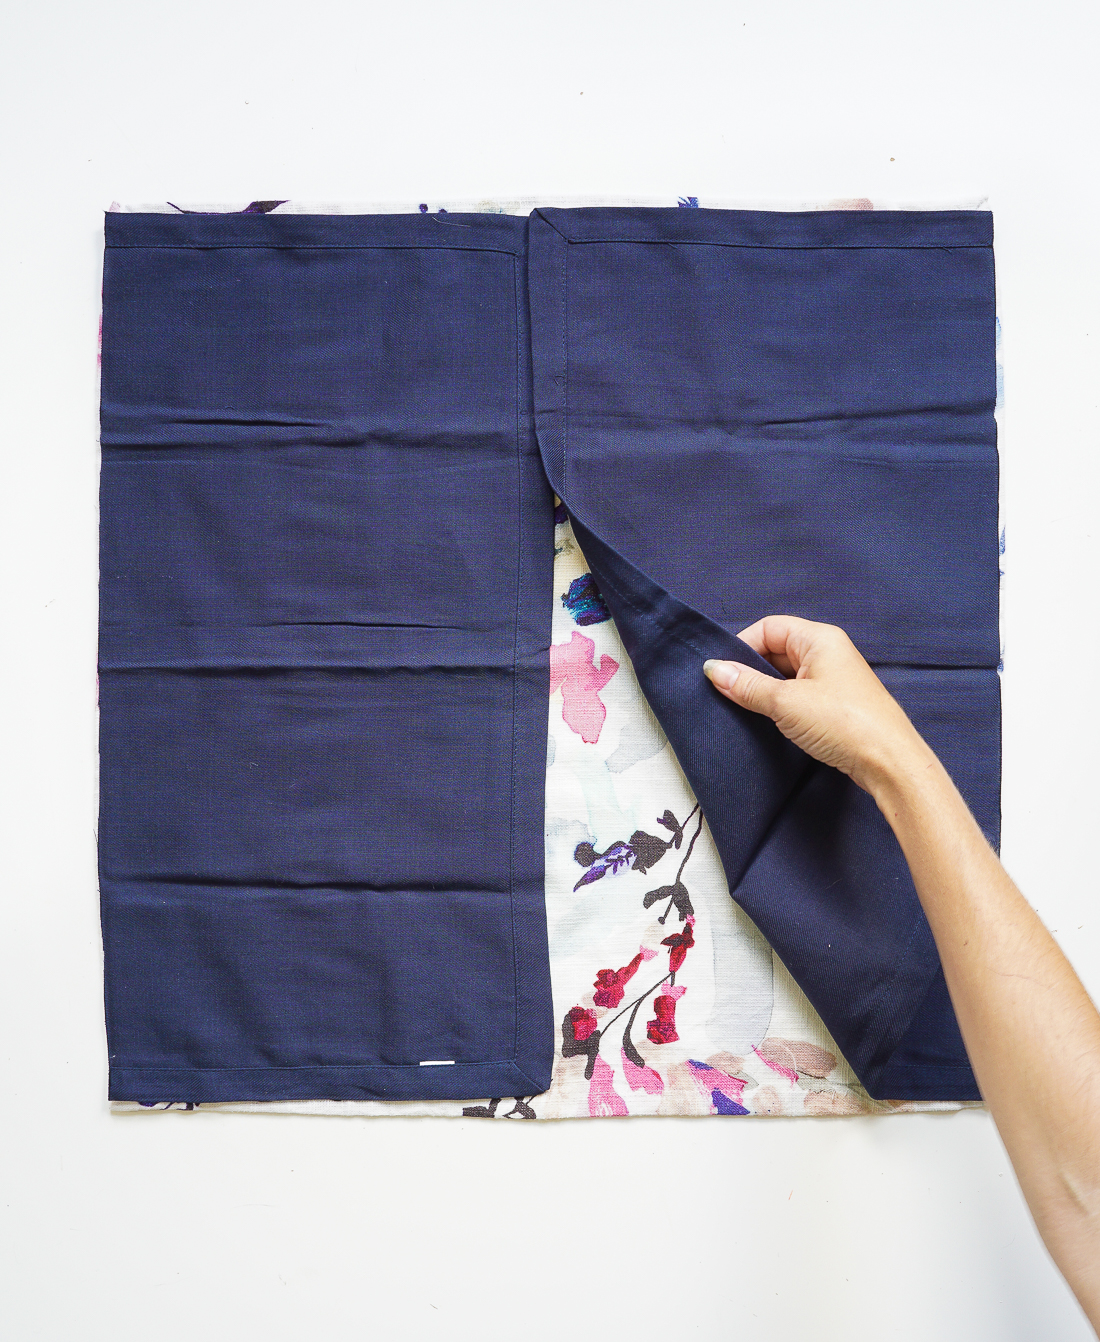 No sewing machine? No problem. Make these no-sew envelope pillows without sewing a stitch!